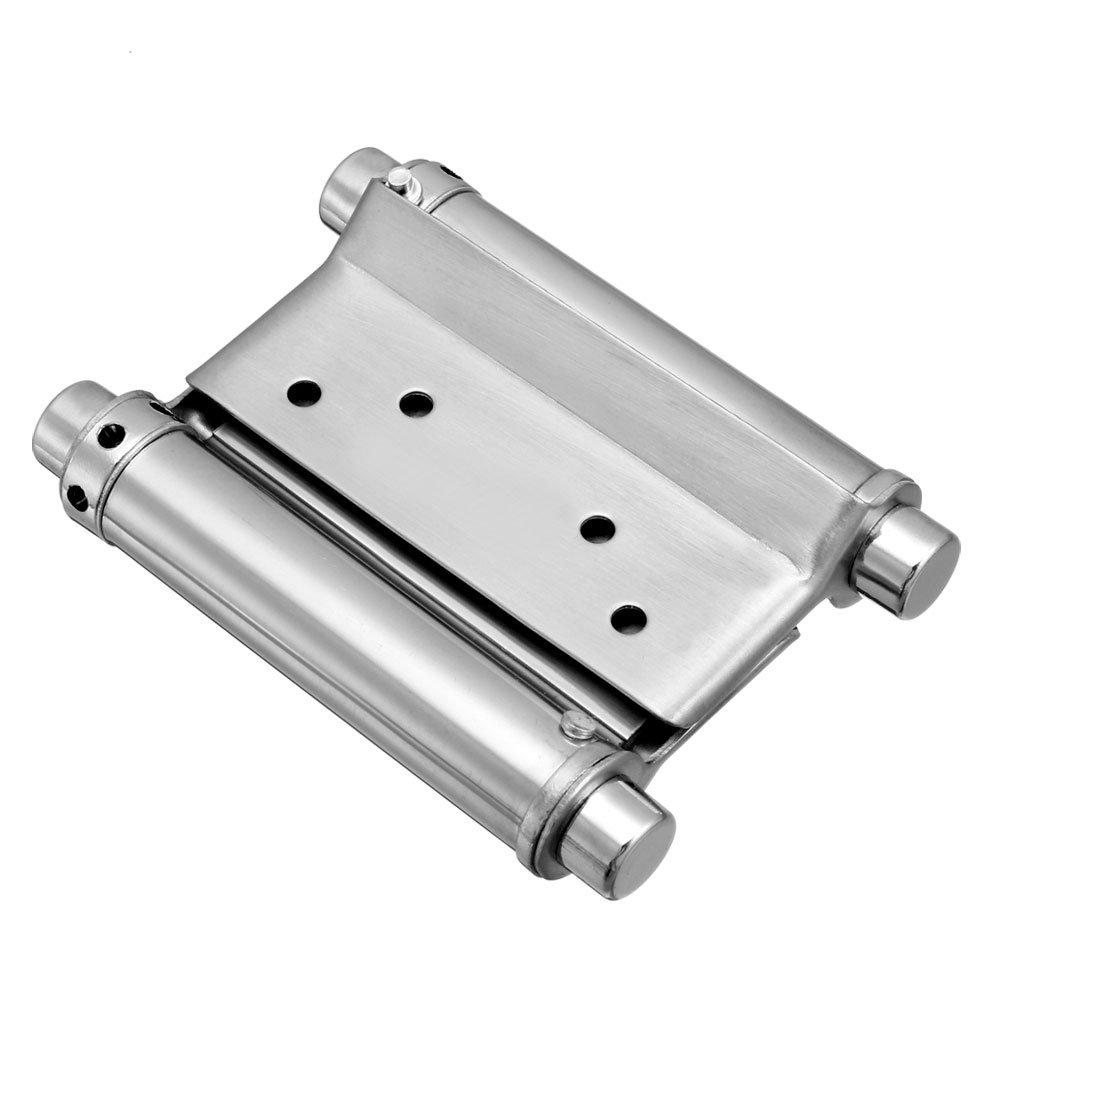 uxcell Double Action Spring Hinge 3'' Stainless Steel Brushed Heavy Load Hinges with Tension Adjustment 1 Pack